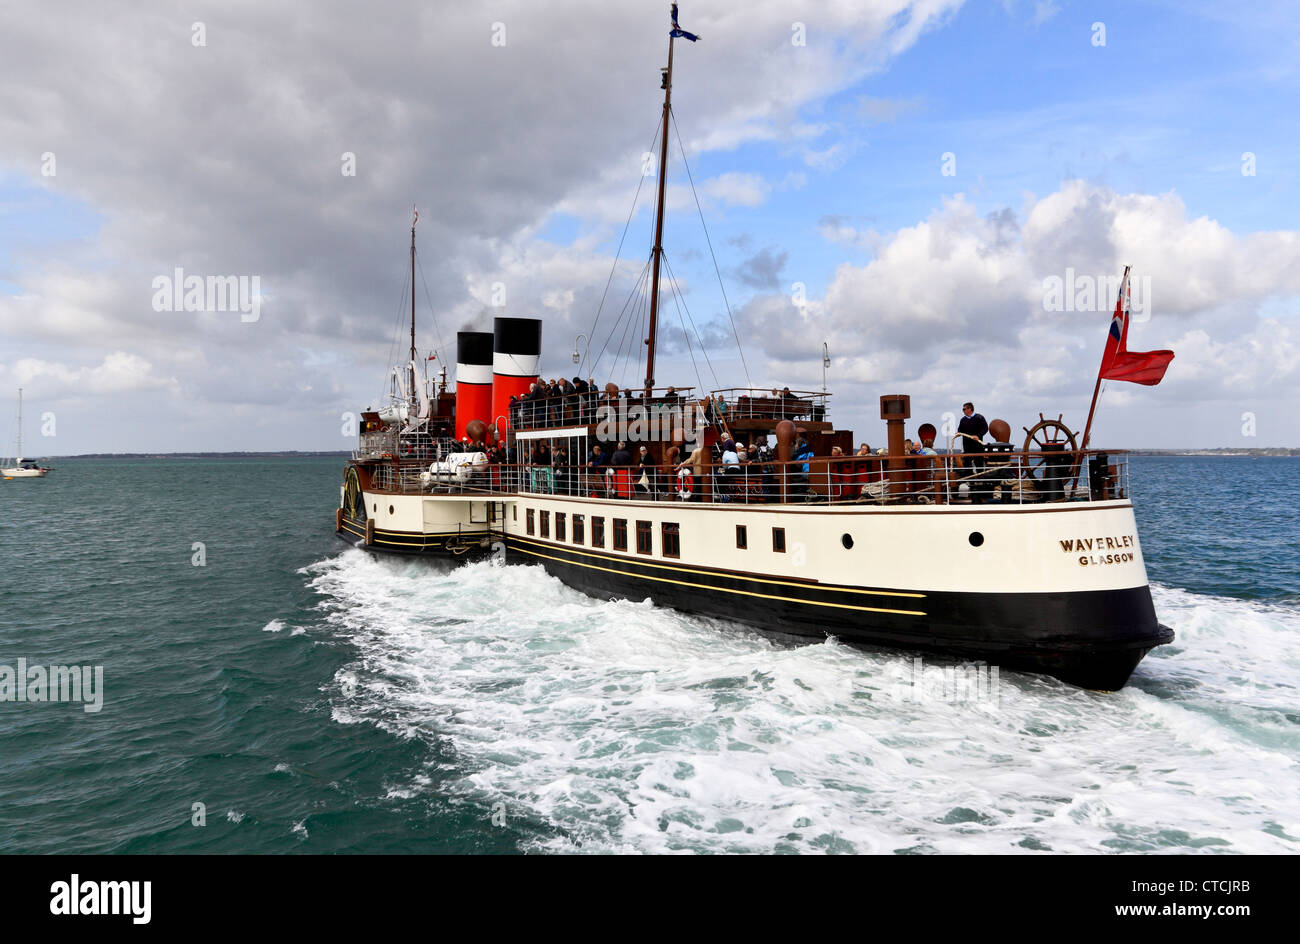 4168. The Waverley Paddle-Steamer leaving Yarmouth Pier, Isle of Wight, UK - Stock Image